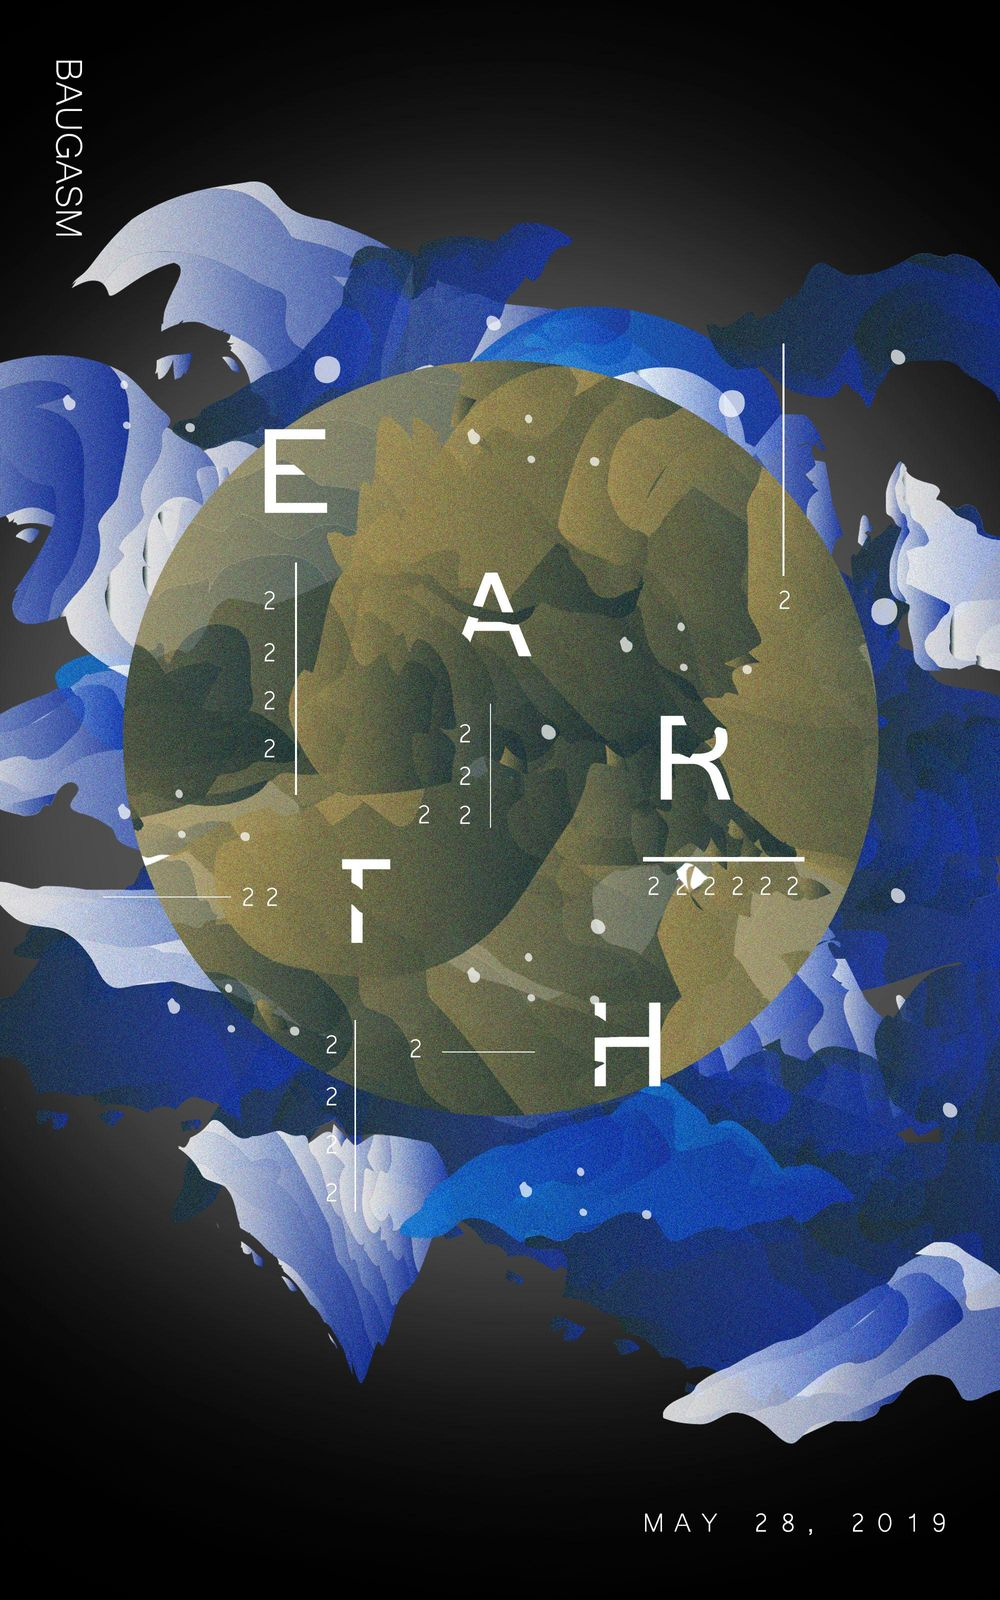 Earth - image 1 - student project